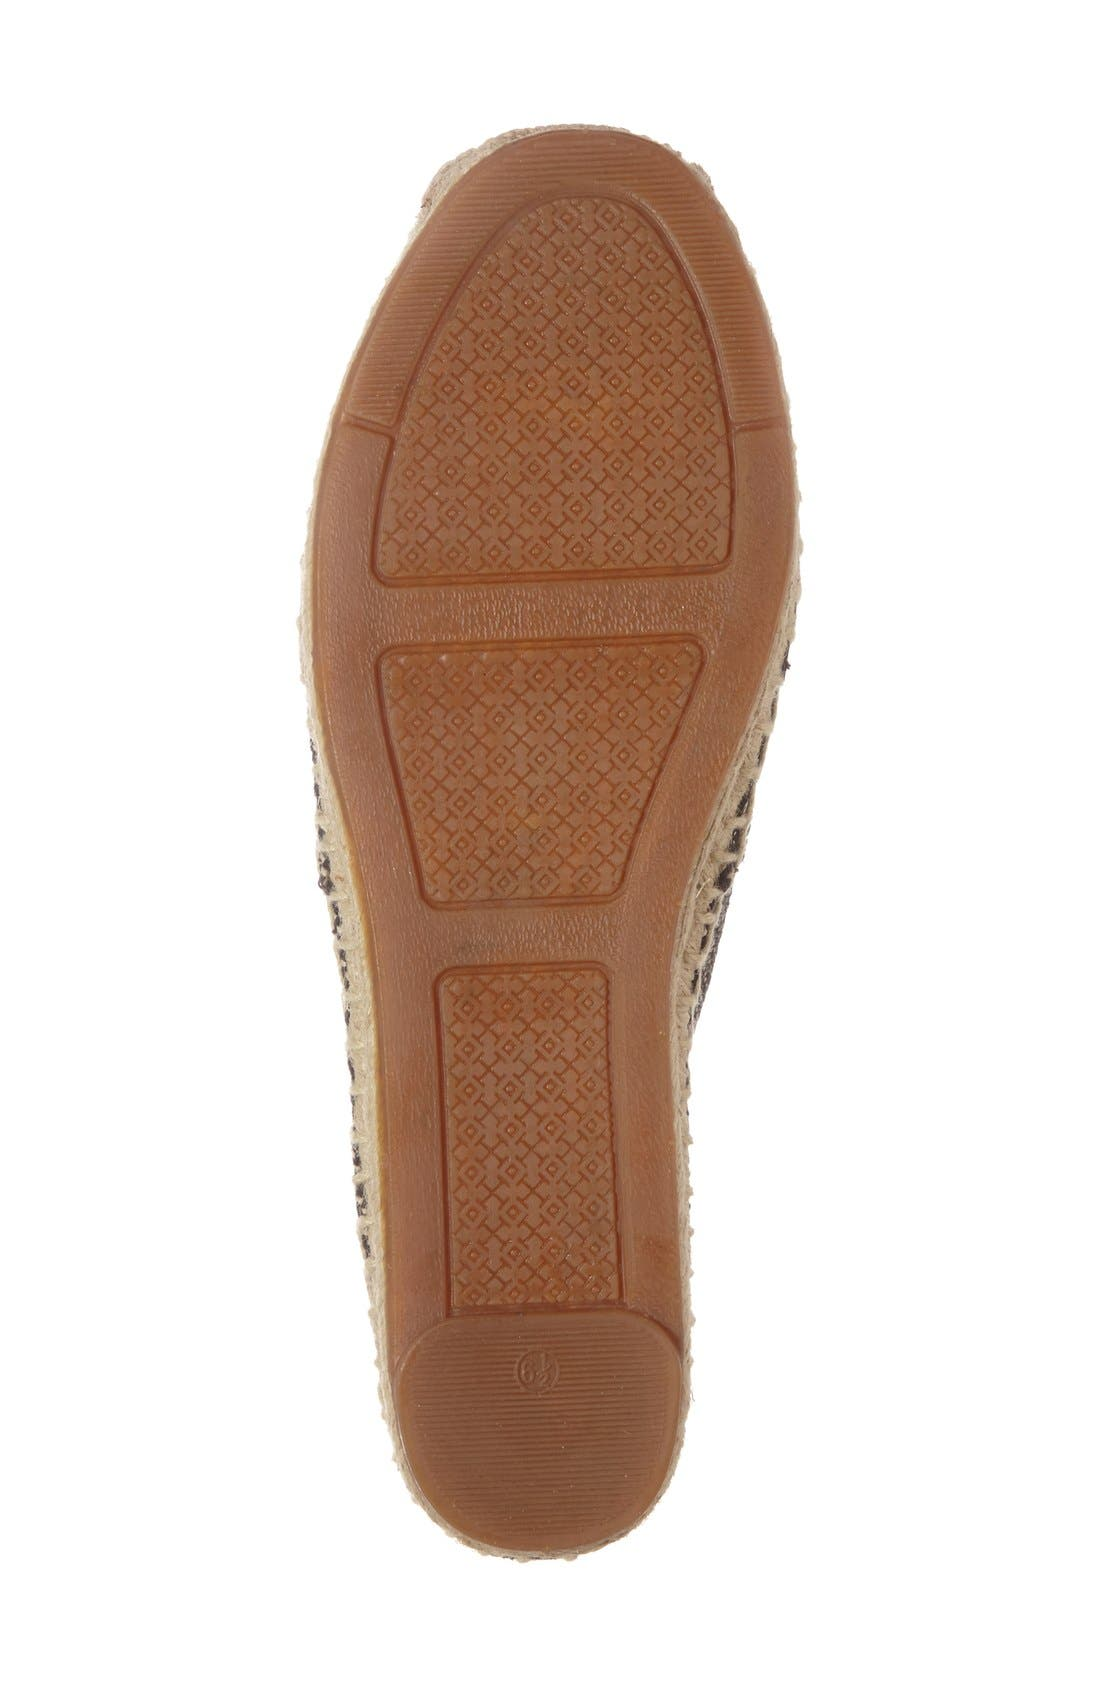 Alternate Image 4  - Tory Burch 'Lonnie' Espadrille Flat (Women)